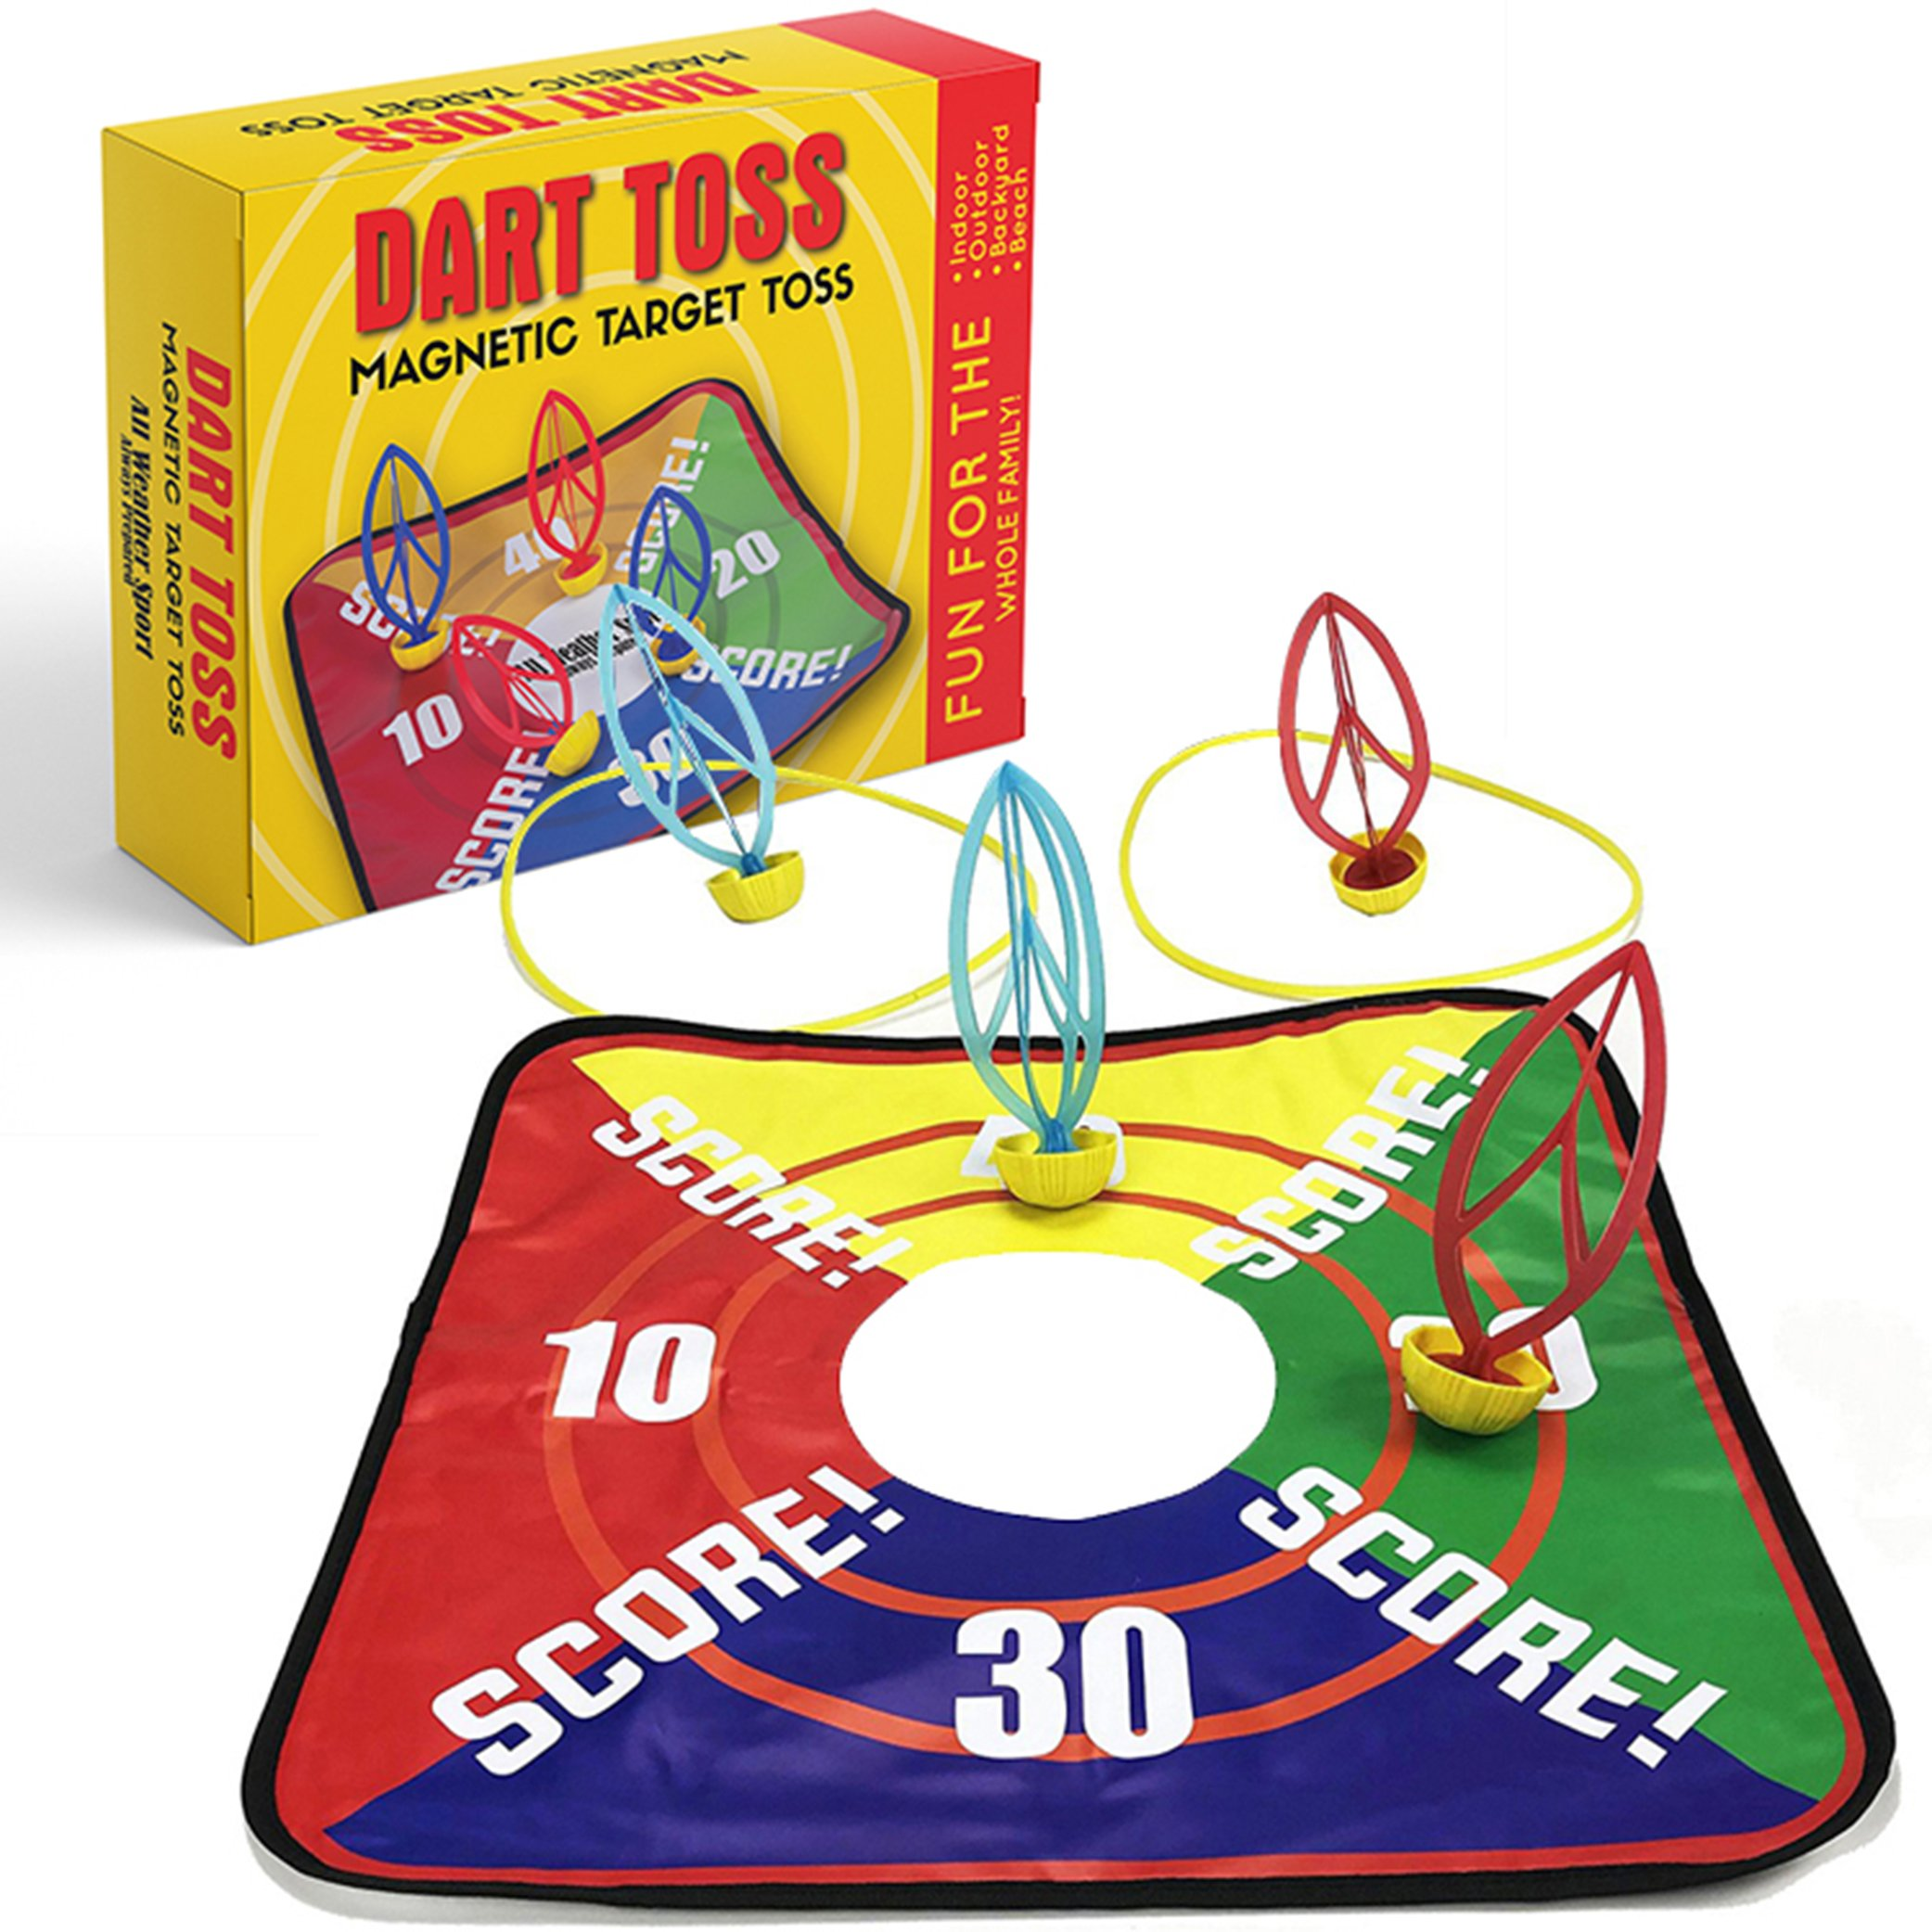 Lawn Darts | Dart Toss | Magnetic Target Toss | Garden, Lawn, Yard, Beach, Outdoor, Indoor & Backyard Games | This Toy is Perfect for all Ages | Fun for the Whole Family | Outdoor Tossing Game | Toys